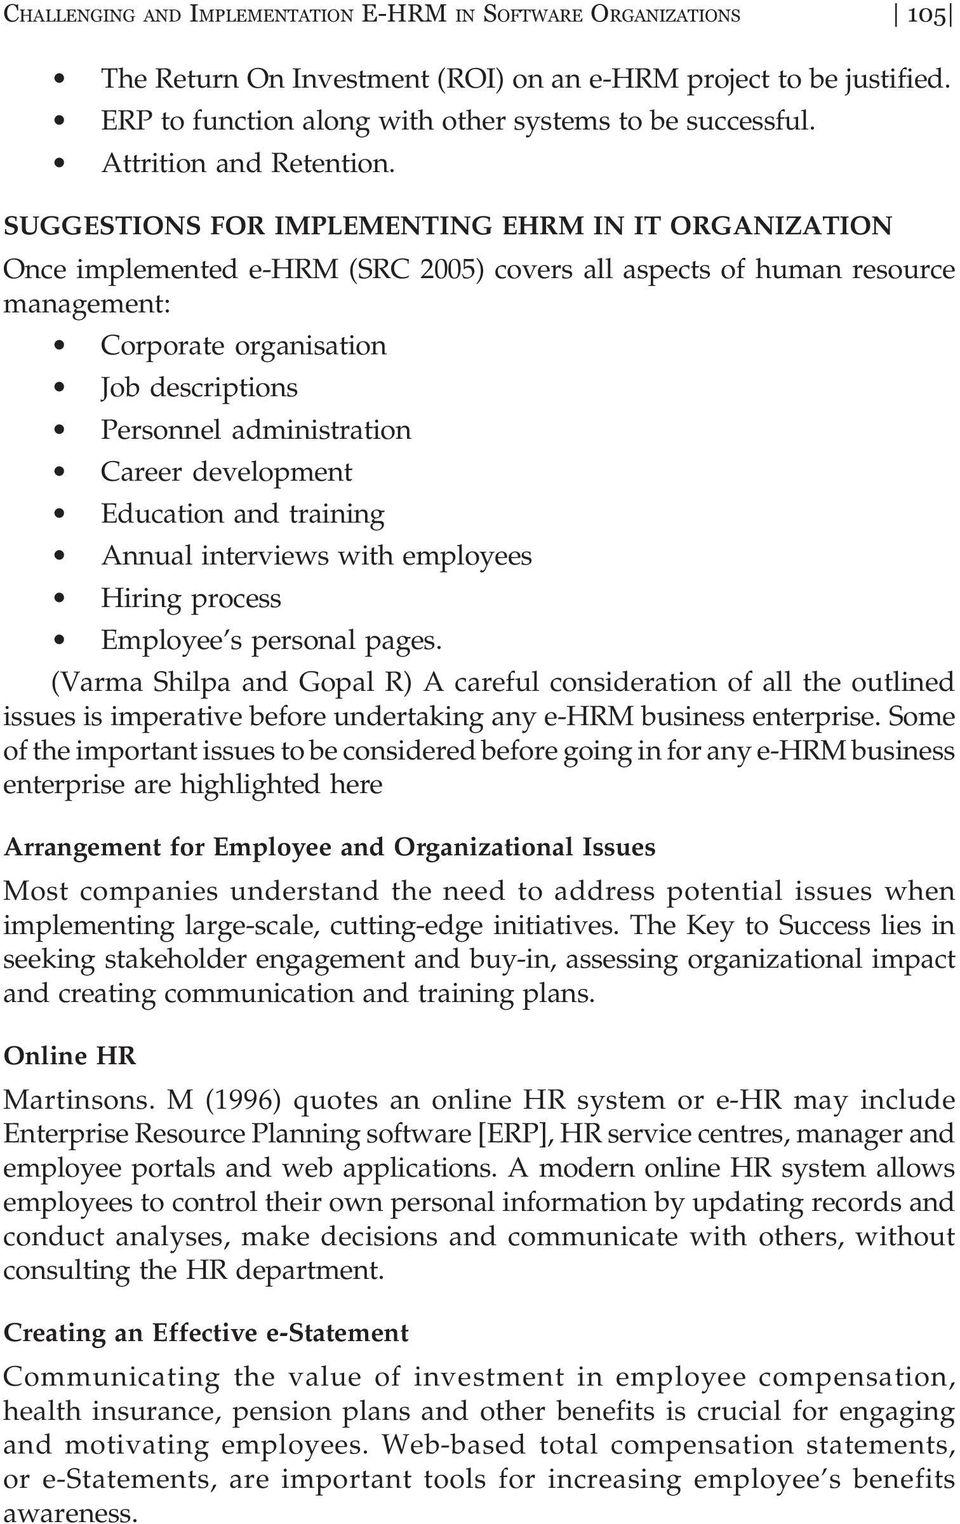 SUGGESTIONS FOR IMPLEMENTING EHRM IN IT ORGANIZATION Once implemented e-hrm (SRC 2005) covers all aspects of human resource management: Corporate organisation Job descriptions Personnel